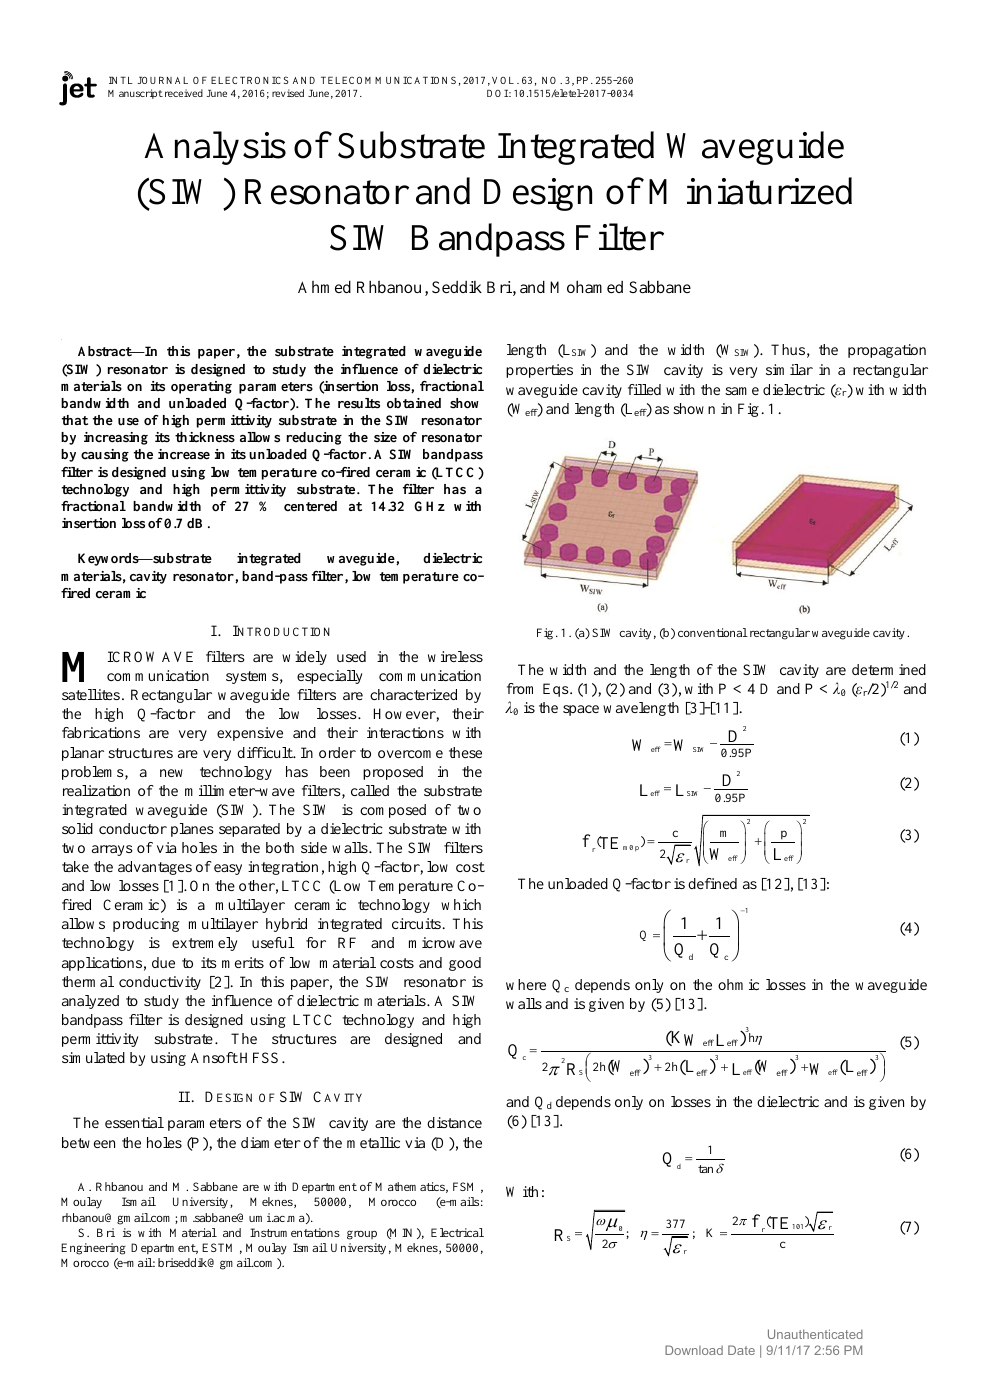 Analysis of Substrate Integrated Waveguide (SIW) Resonator and